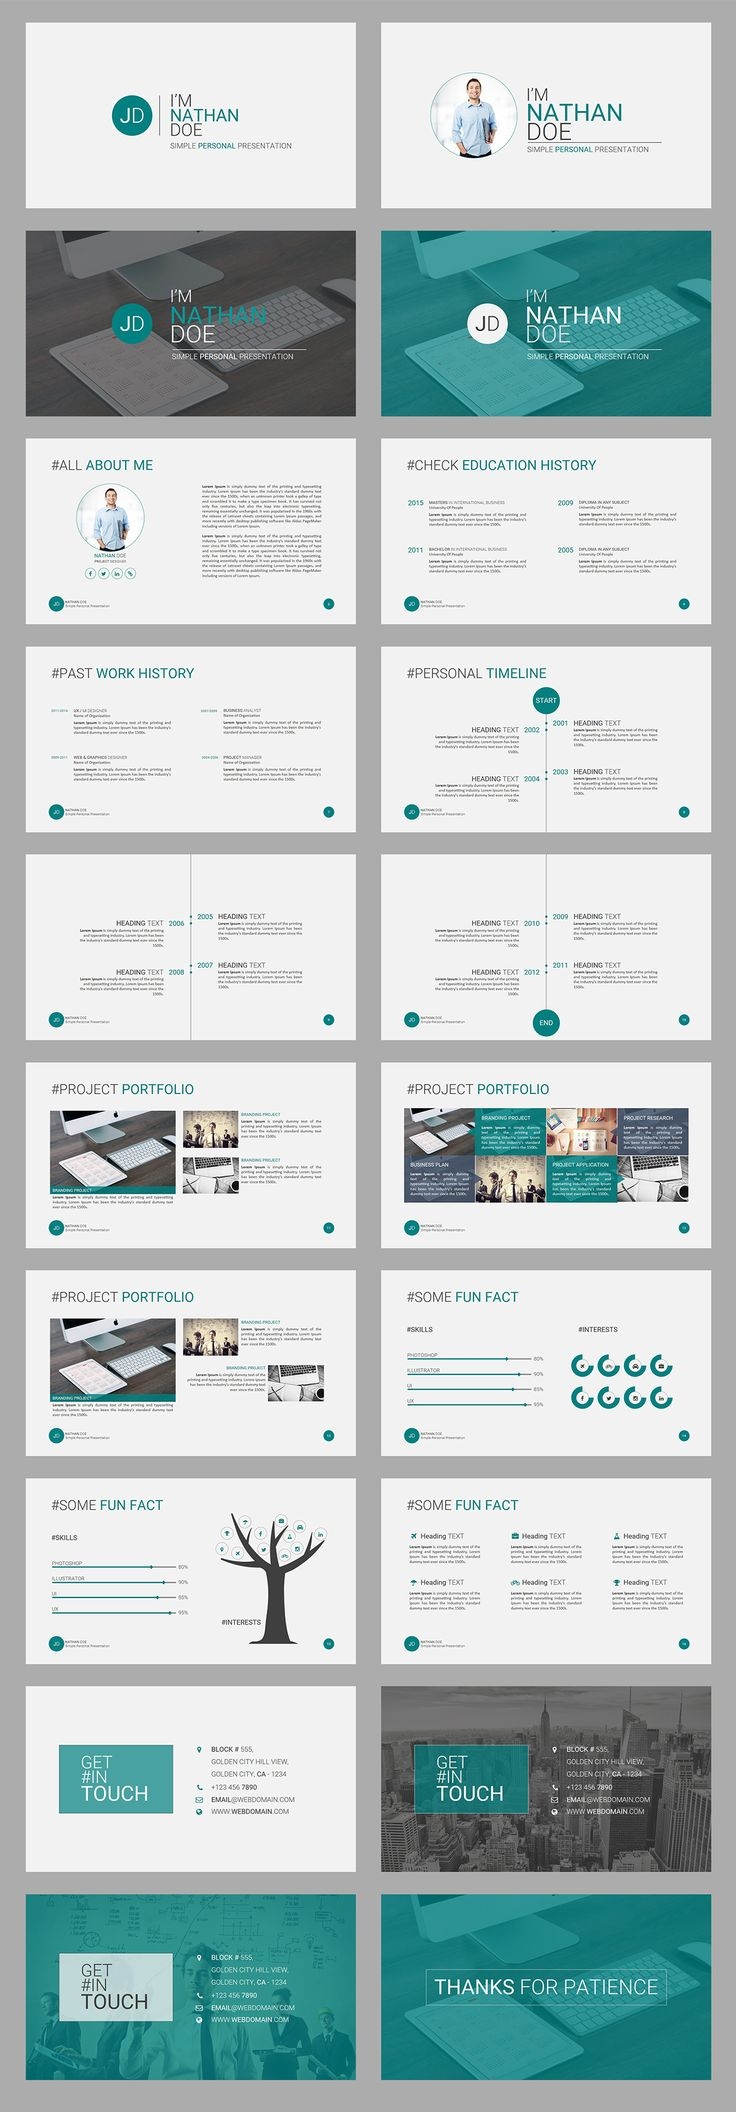 best ideas about great powerpoint presentations jd personal cv resume powerpoint presentation template is a but for any corporate or business person its a great way to brand yourself in front of